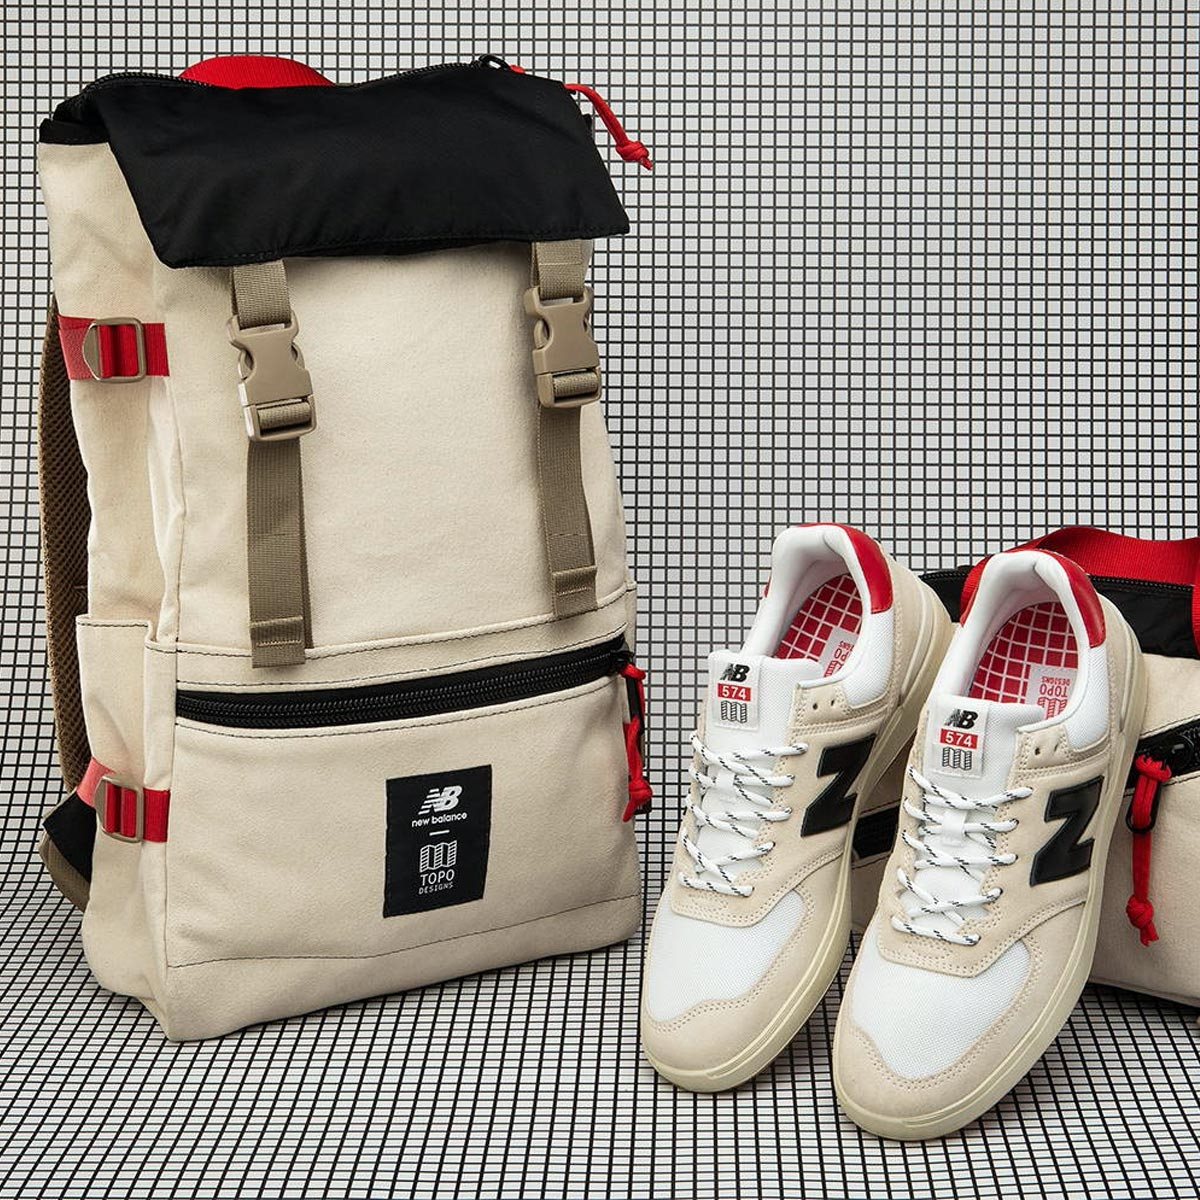 Topo Designs x New Balance Rover Pack, Introducing Topo Designs x New Balance collaboration